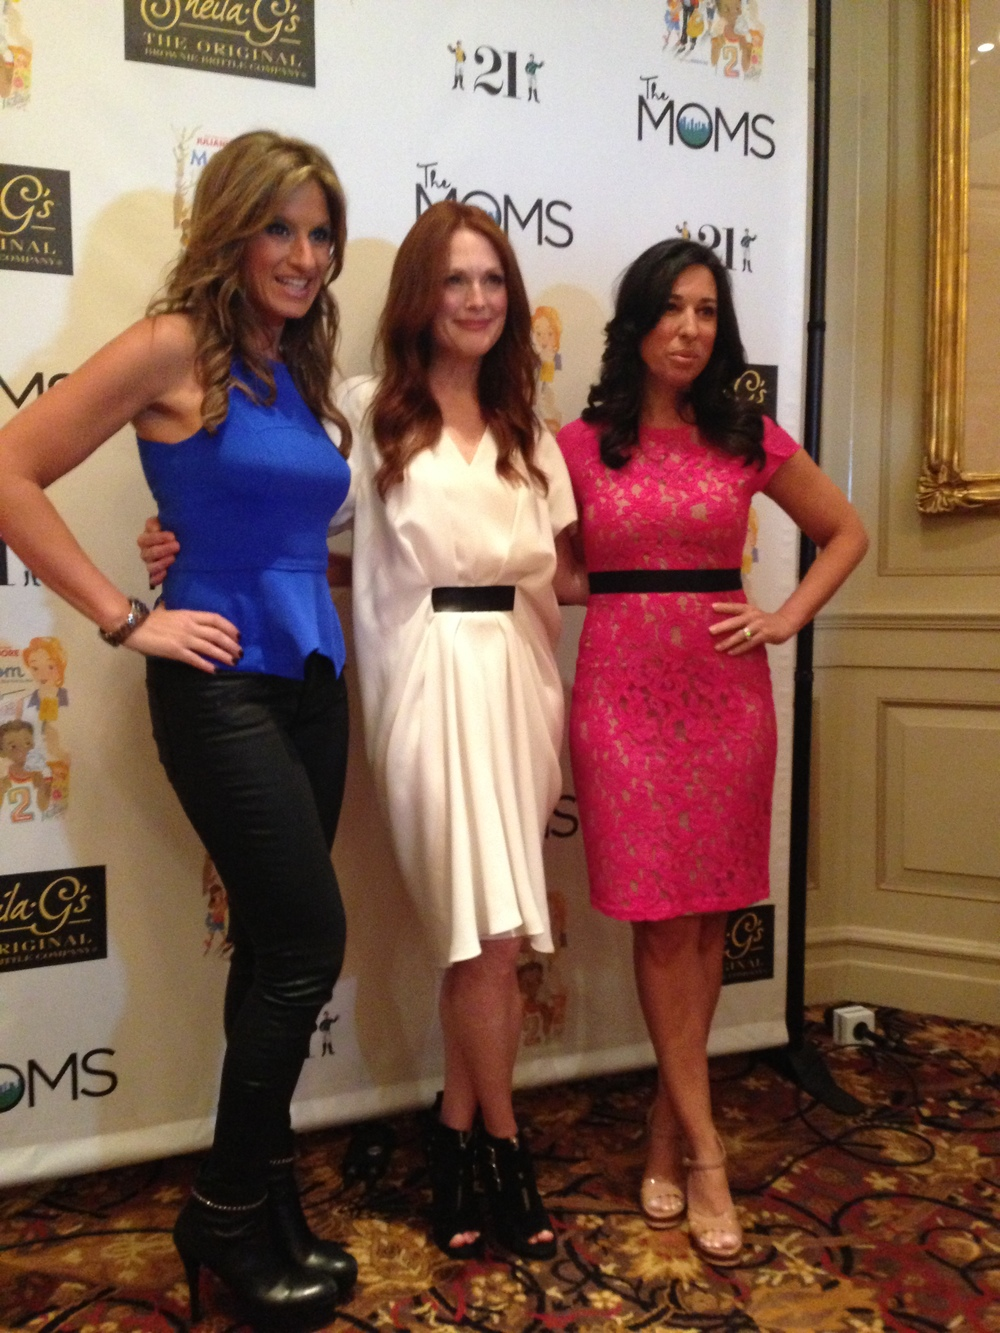 Julianne Moore with Denise Albert and Melissa Musen Gerstein, founders of The Moms. Julianne is wearing an Alexander Wang dress..love it!